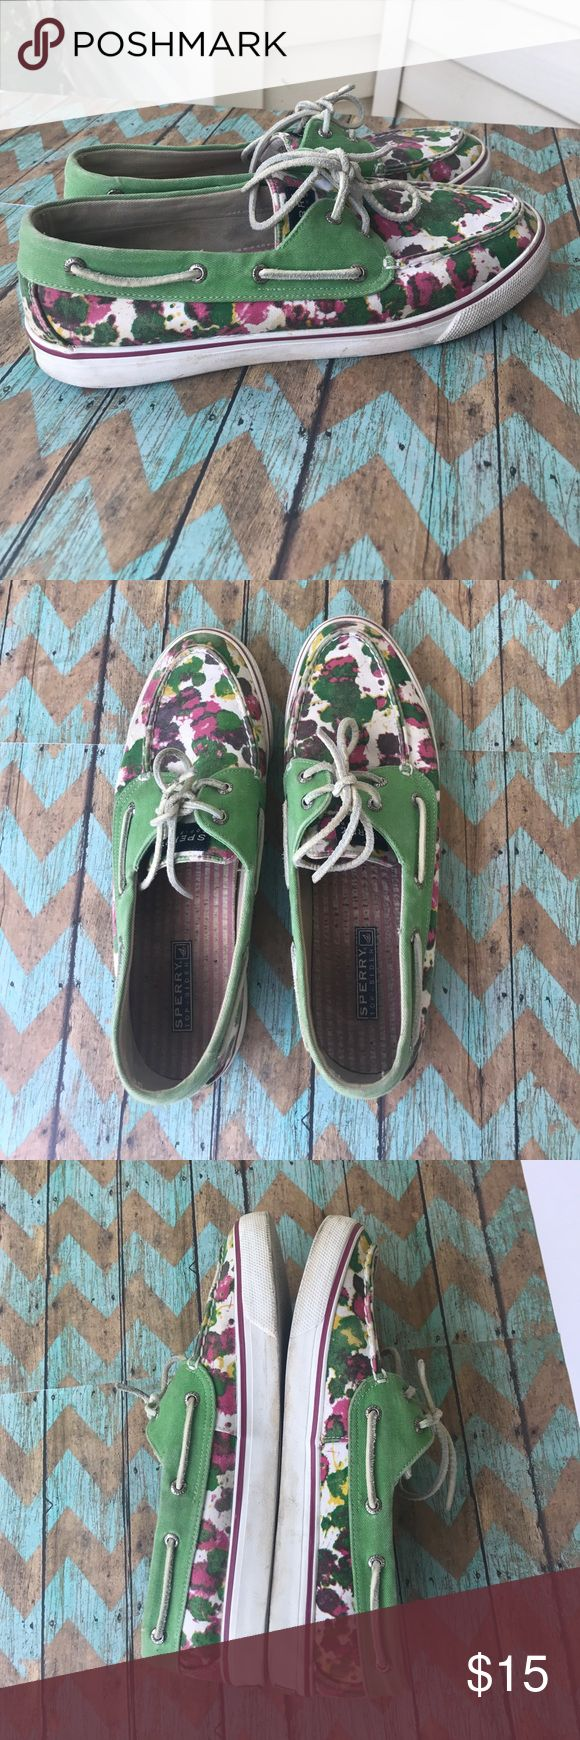 Sperrys Ink design sperrys! These are worn condition and could use a cleaning on the white rubber sides.  There are signs of wear on the bottom as well but they still have plenty of life left.! Sperry Top-Sider Shoes Flats & Loafers